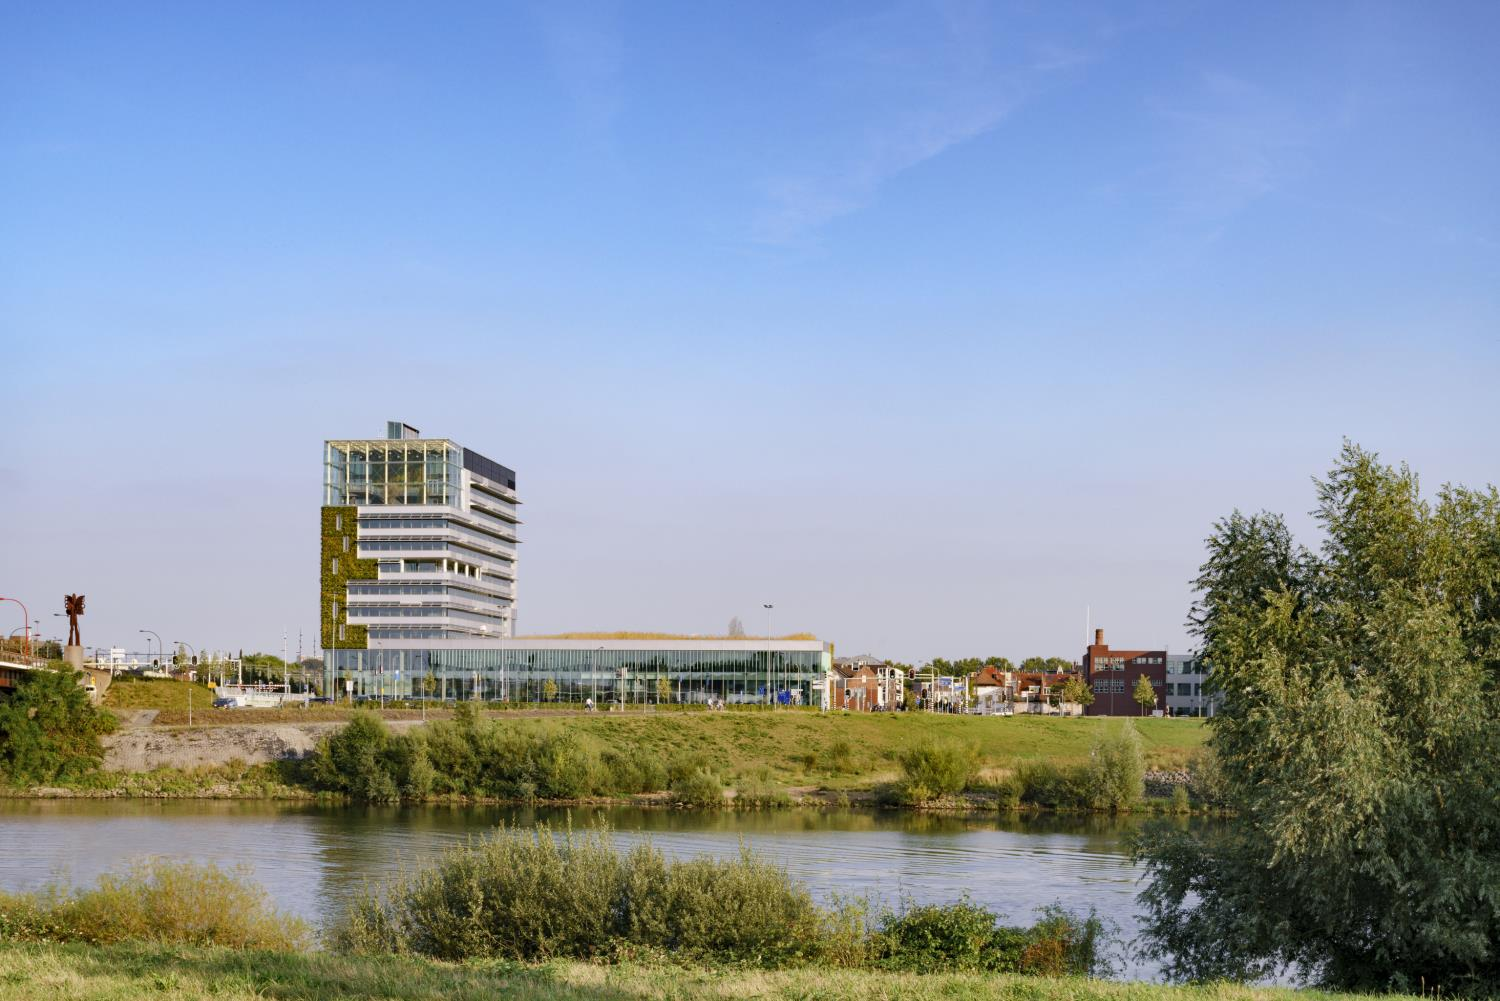 The City Hall is located next to the Maas river lifeblood of the region